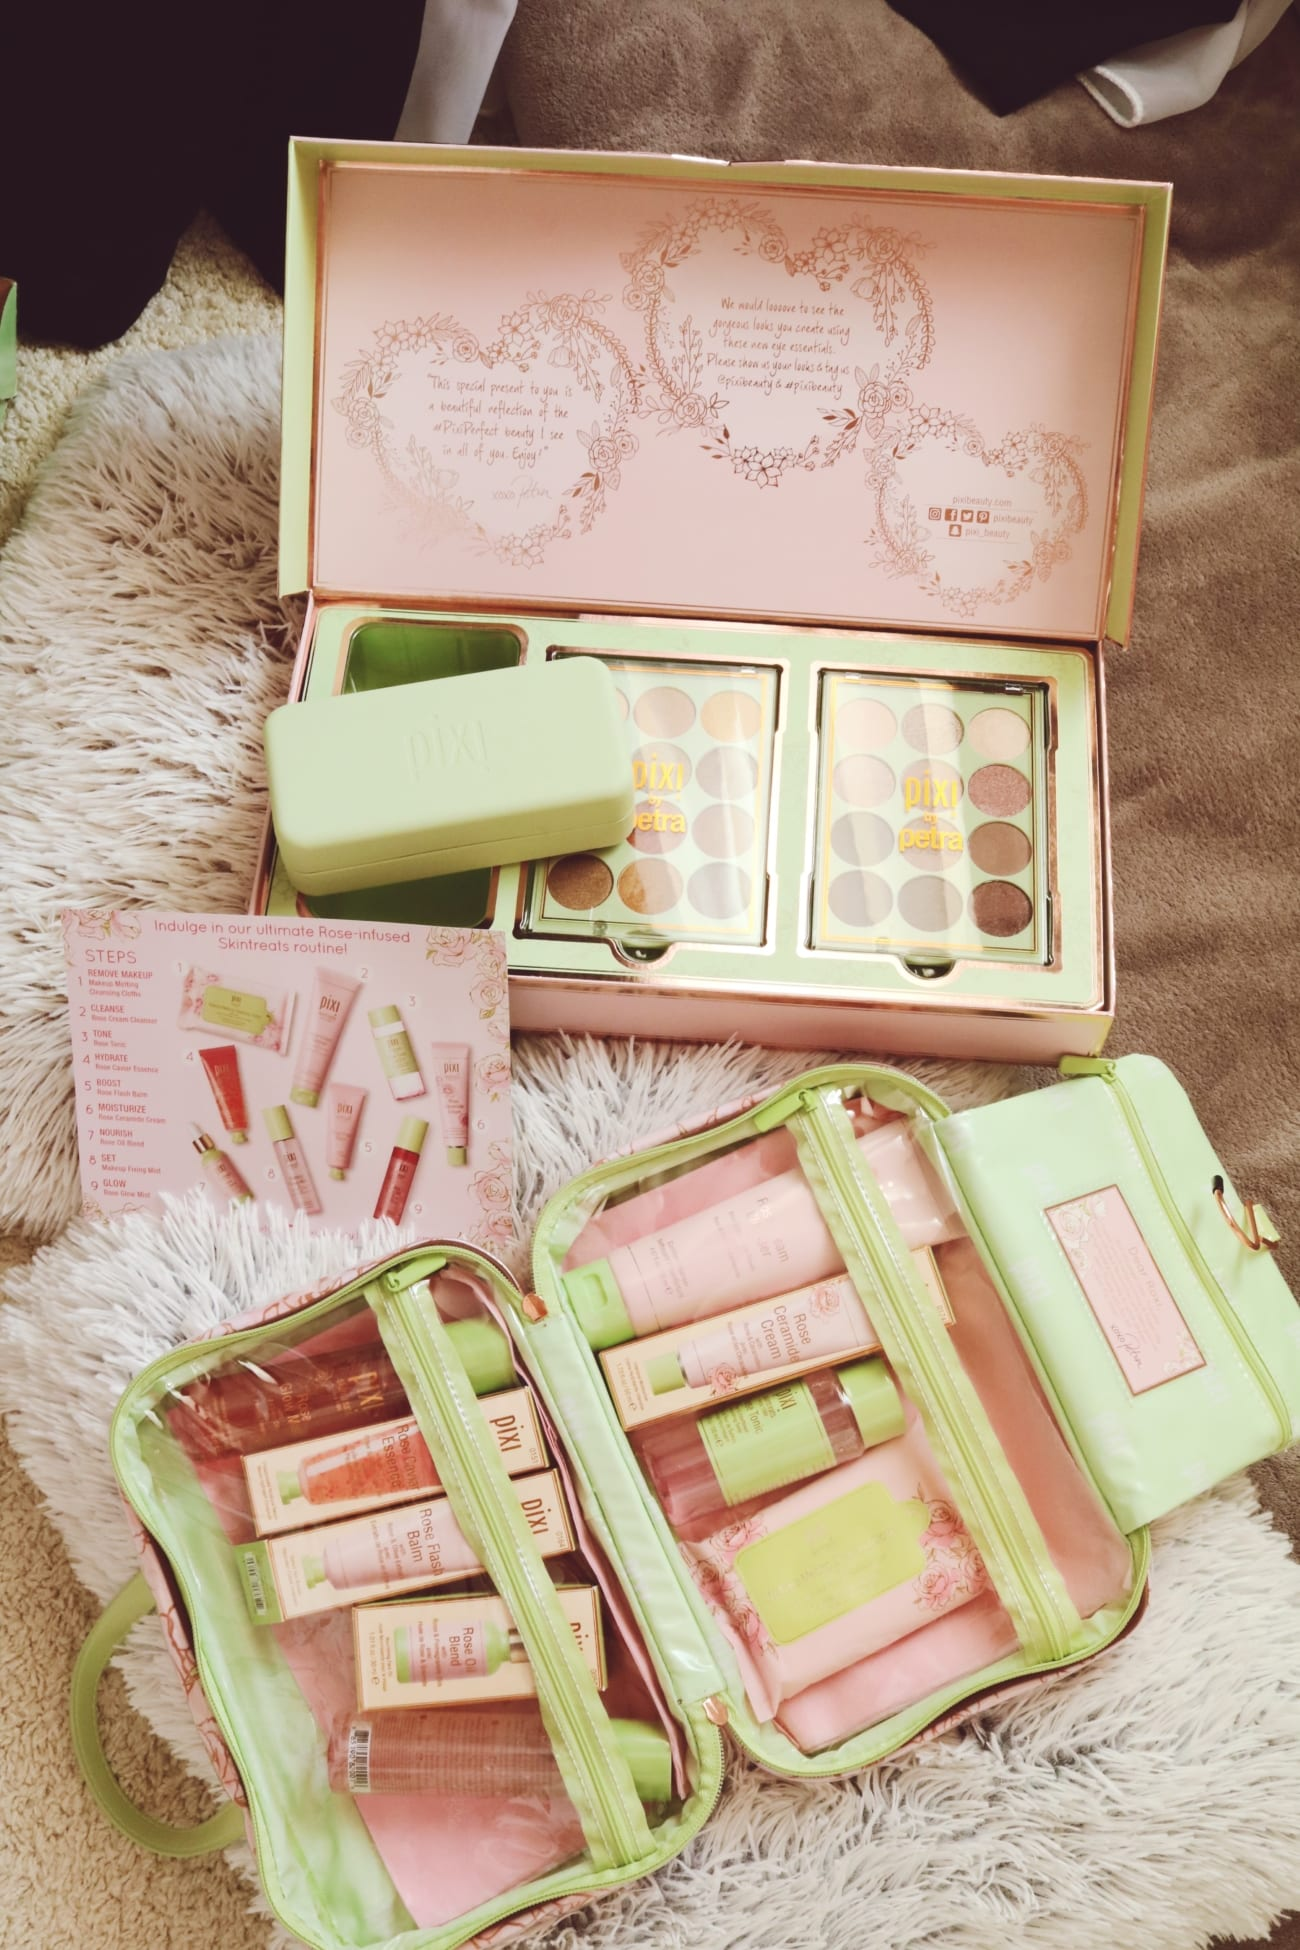 💄 Pixi Beauty News & What can you find at Sephora Romania